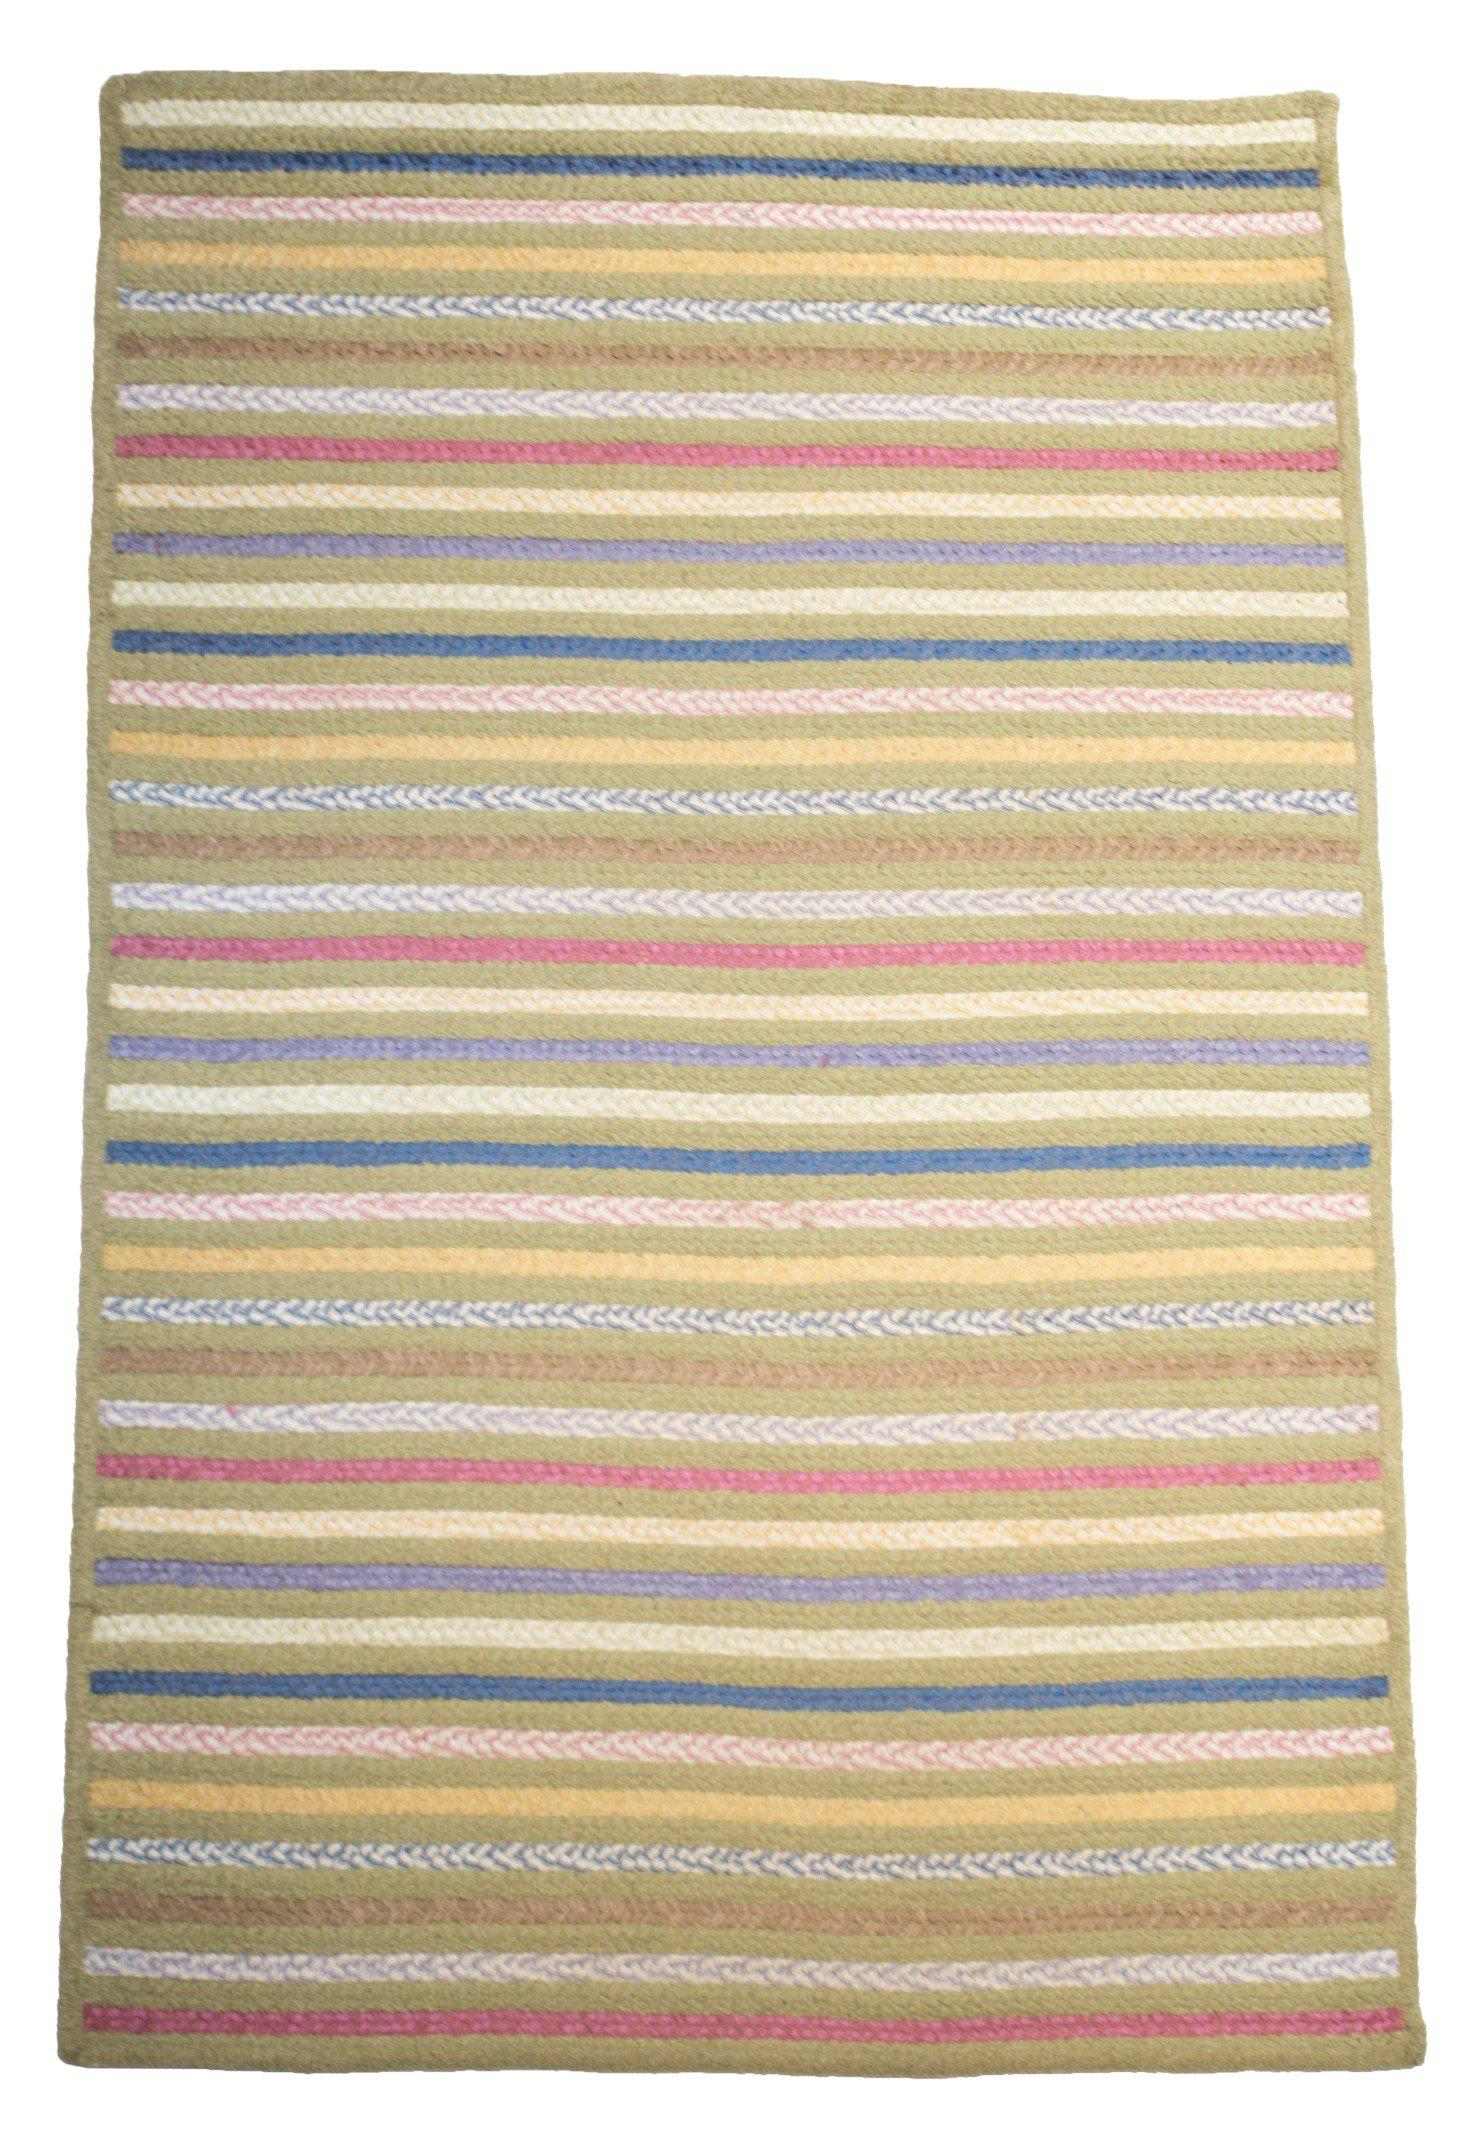 4' x 6' Modern Striped Area Rug-Area Rugs-Rug Shop and More